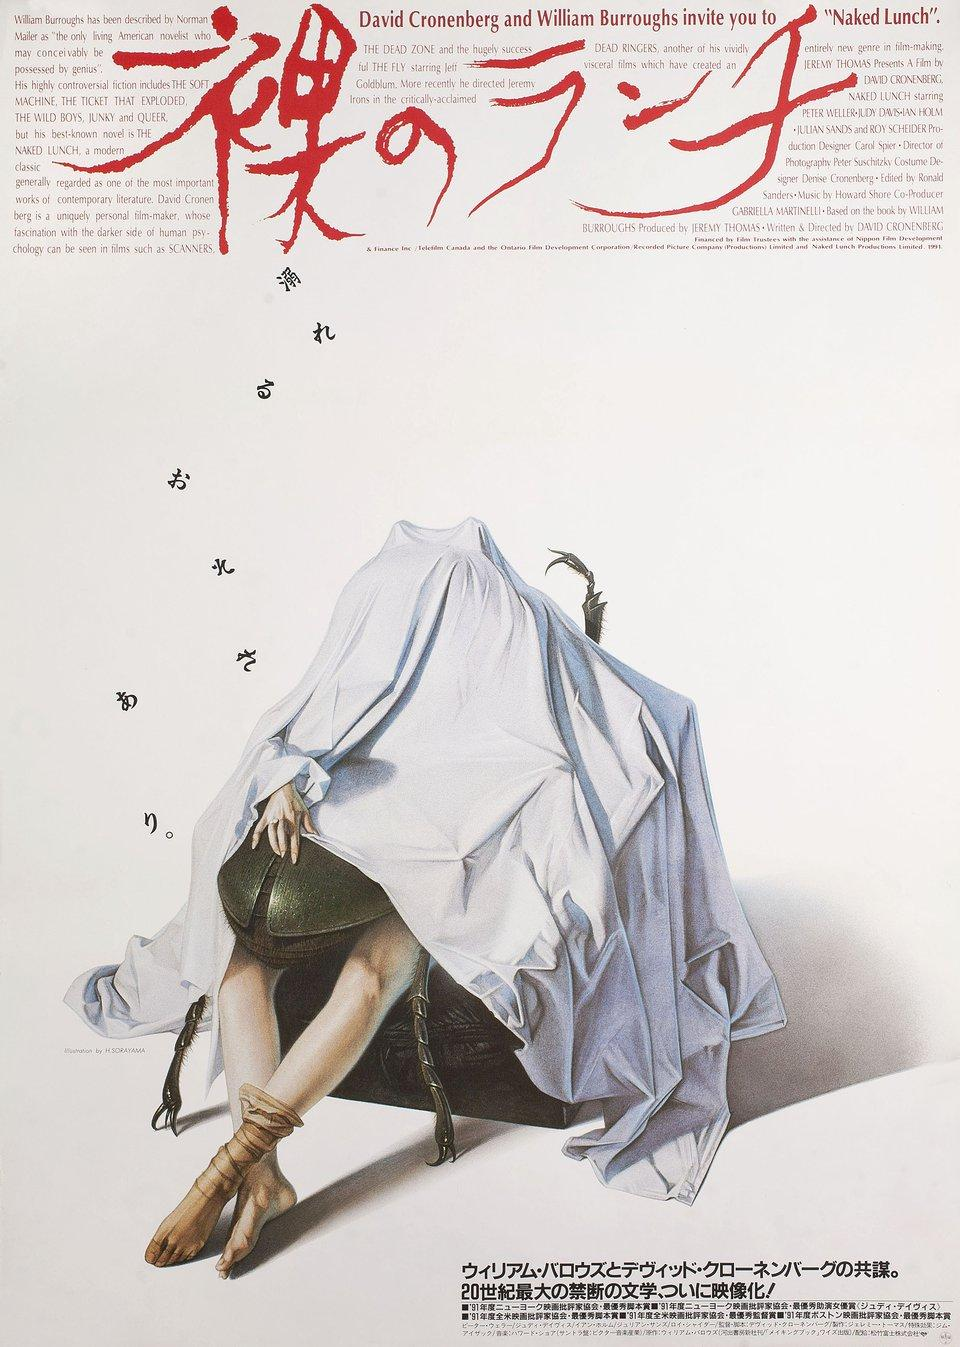 Naked Lunch 1991 Japanese B2 Poster Hajime Sorayama  Happy 76th Birthday to David Cronenberg, the master.